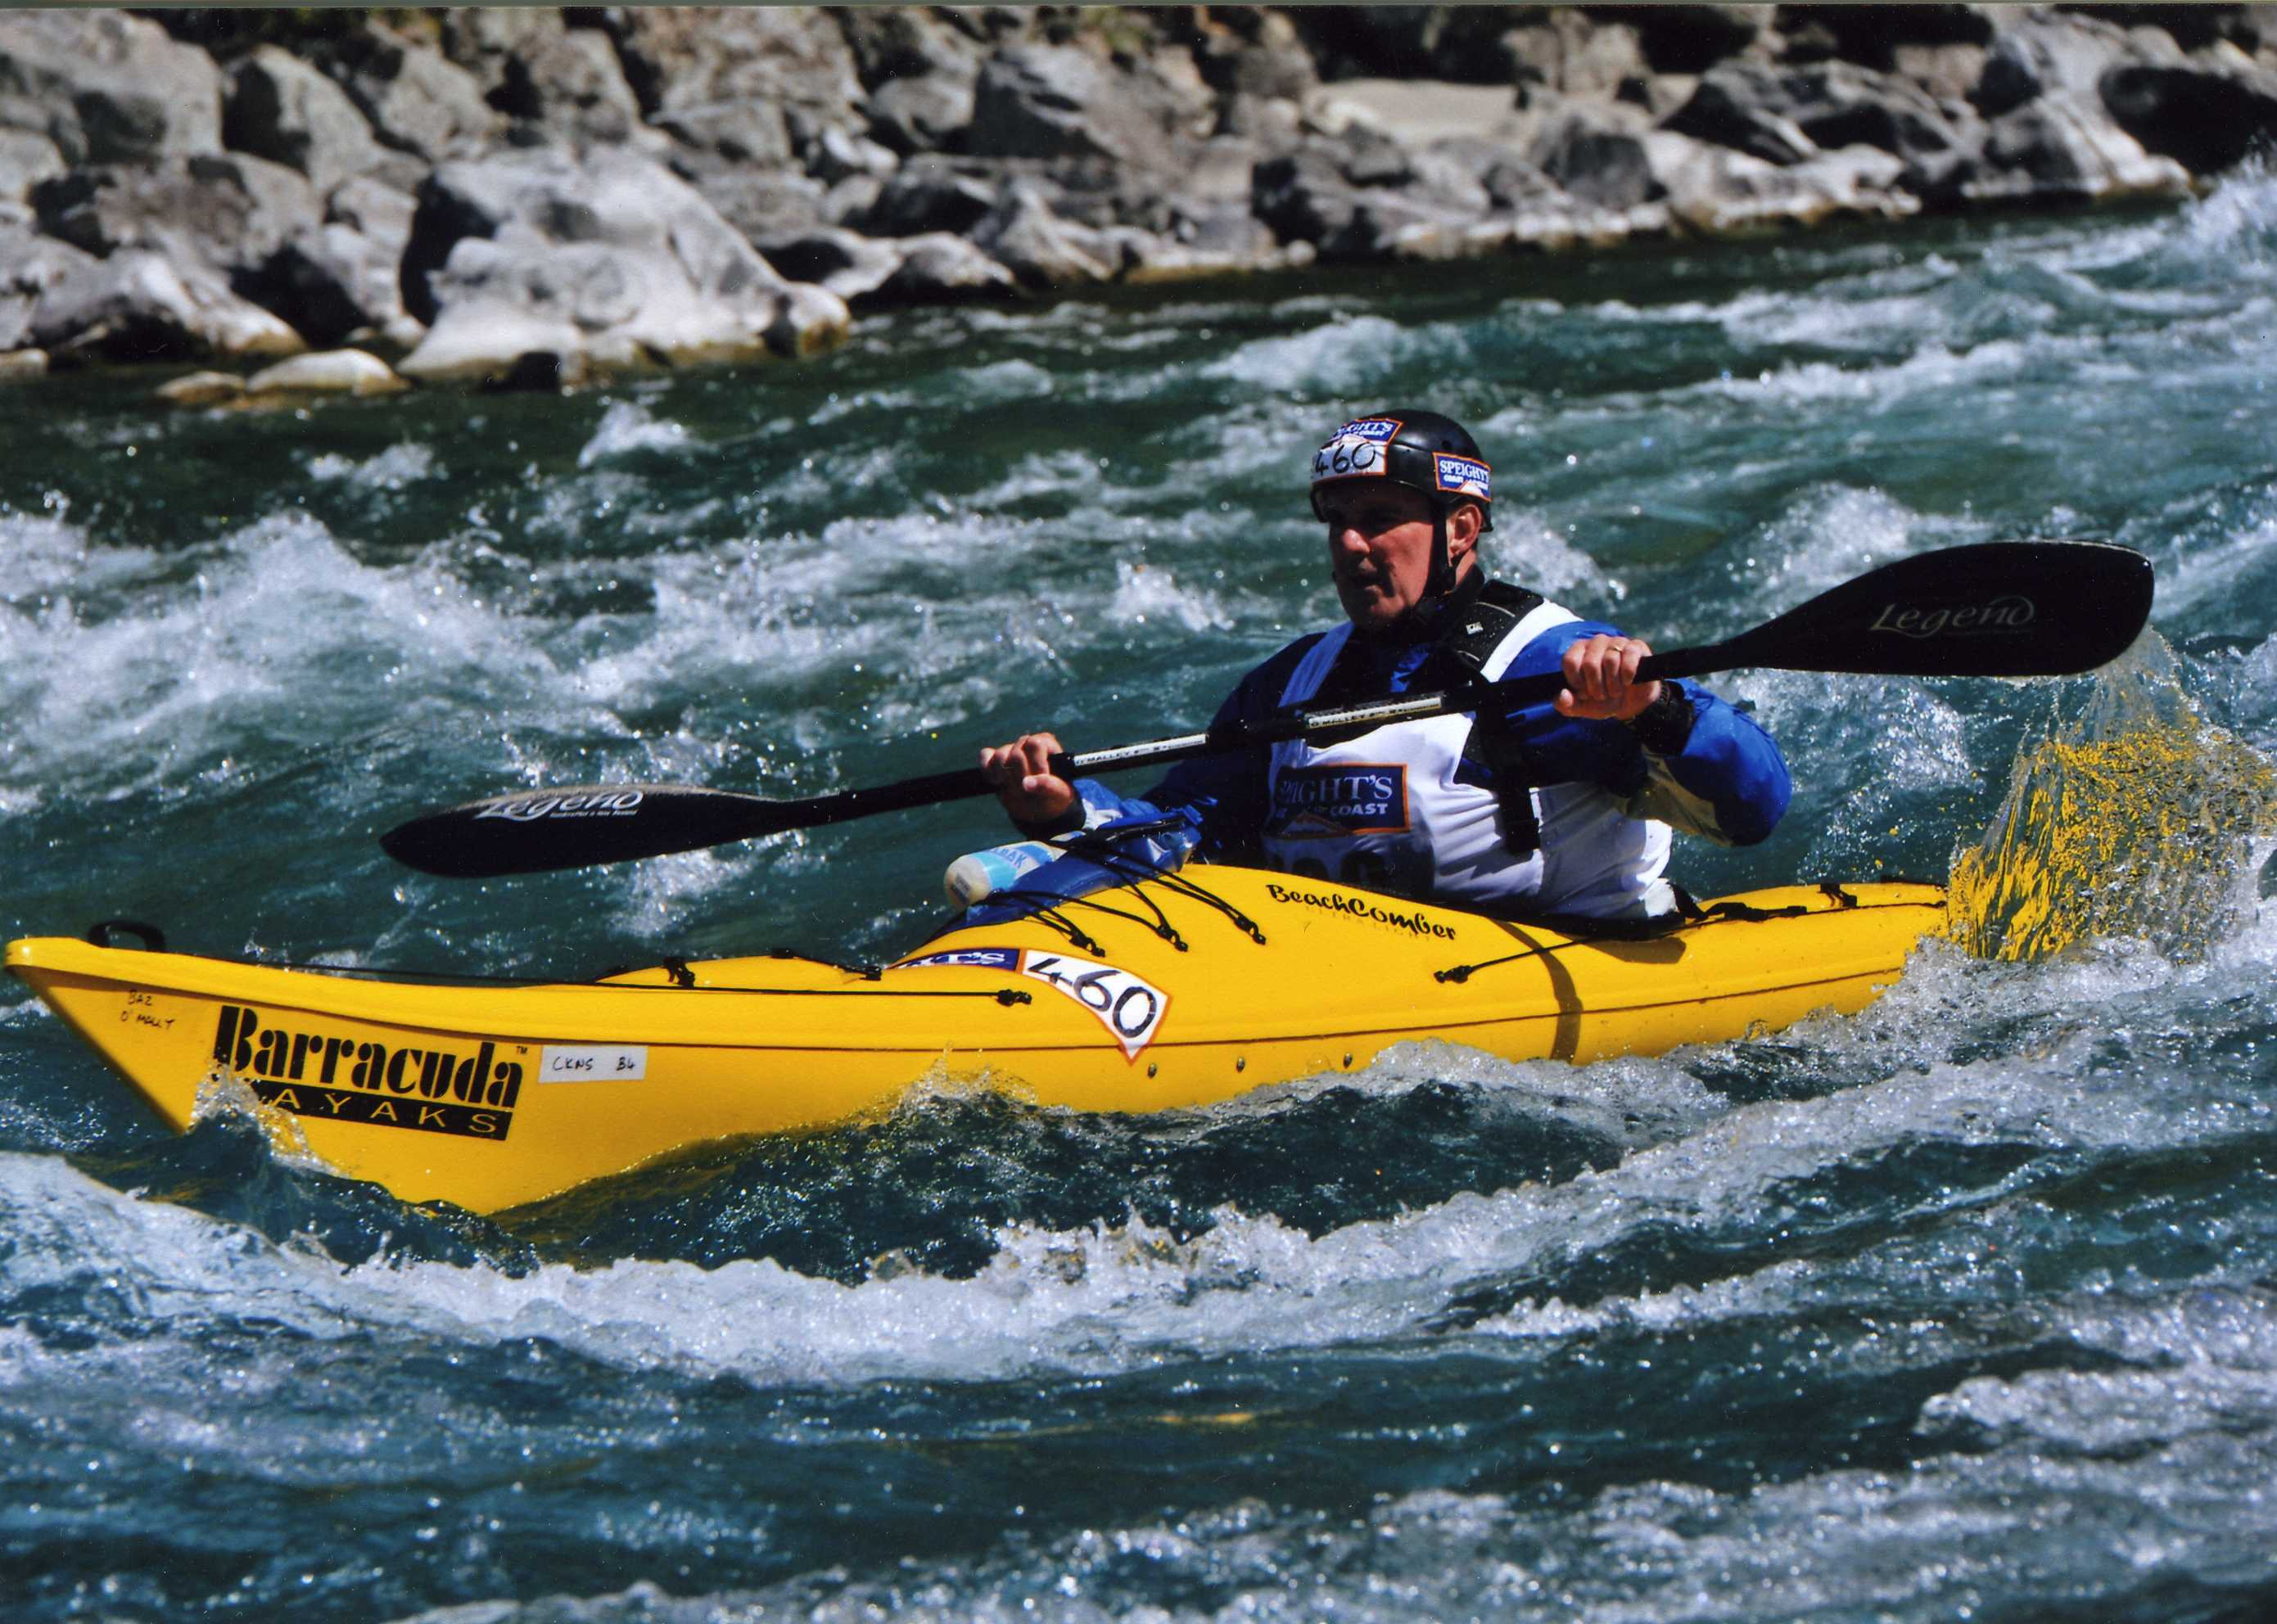 Baz - Out of control on the Waimak River, New Zealand